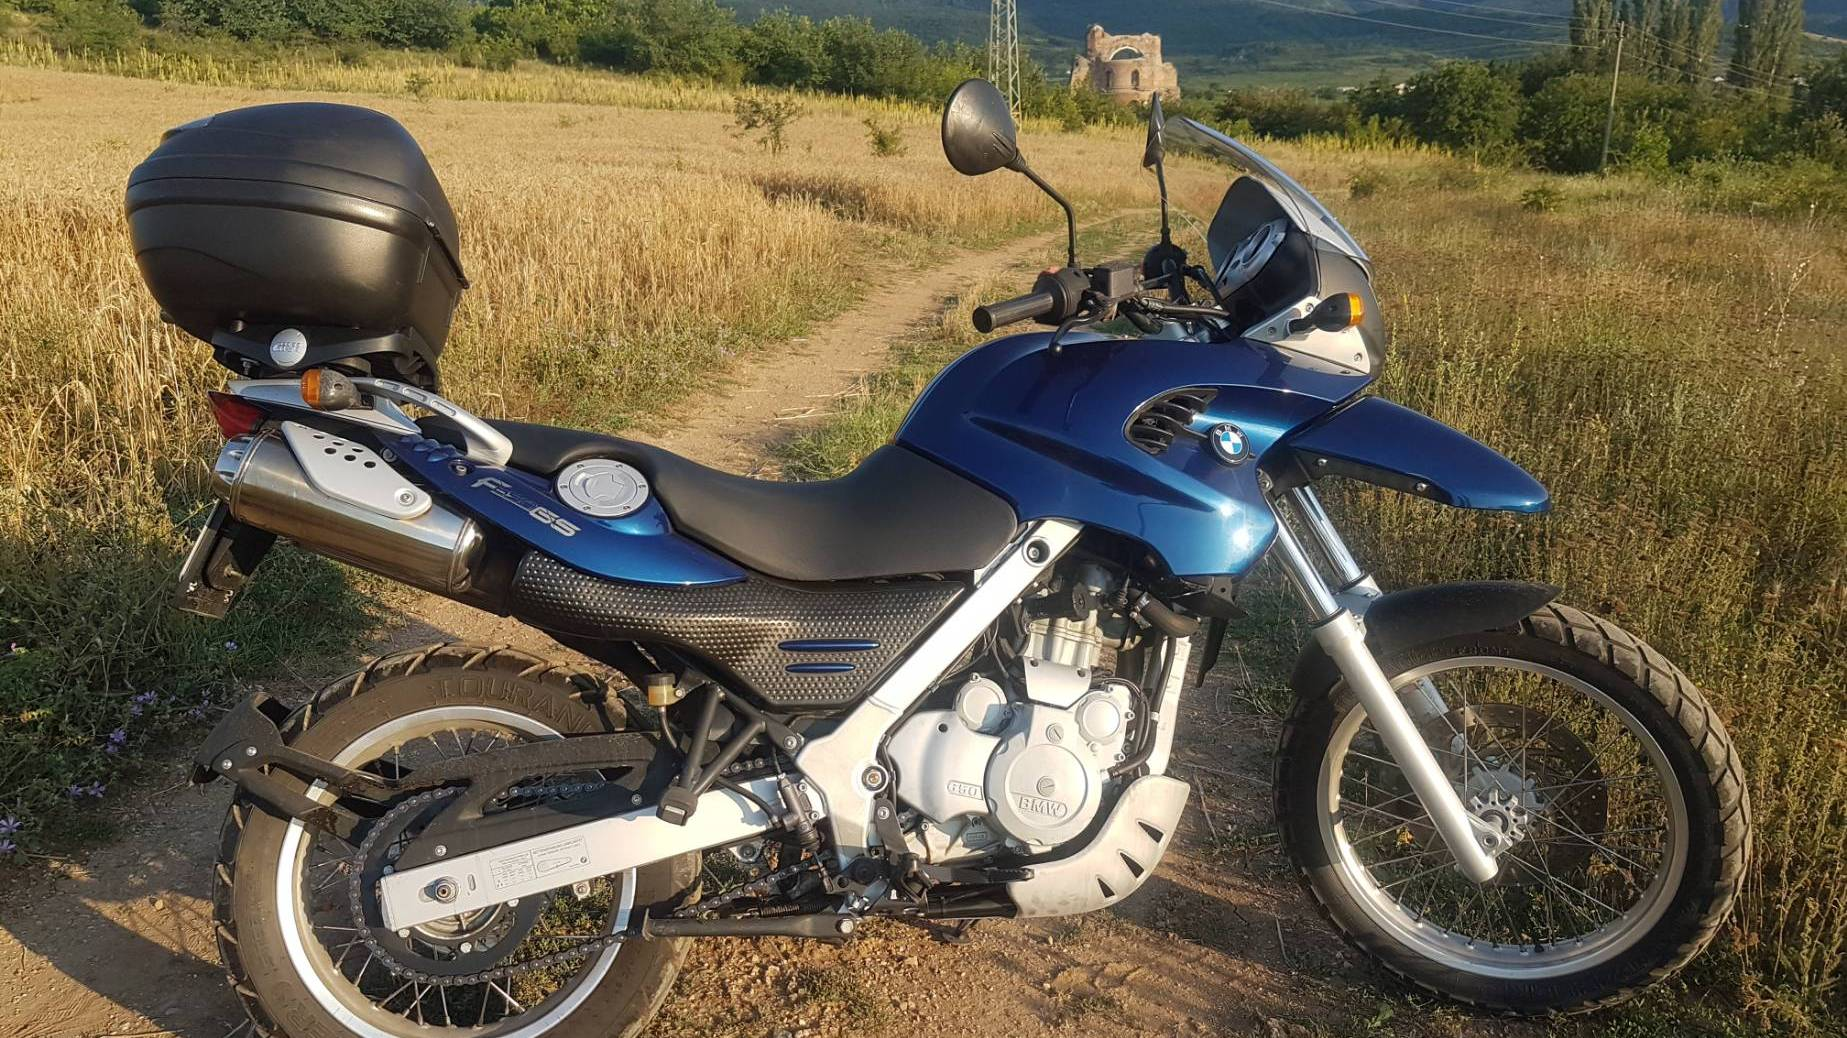 Groovy Bmw F 650 Gs Dakar For Rent Near Plovdiv Plovdiv Pabps2019 Chair Design Images Pabps2019Com